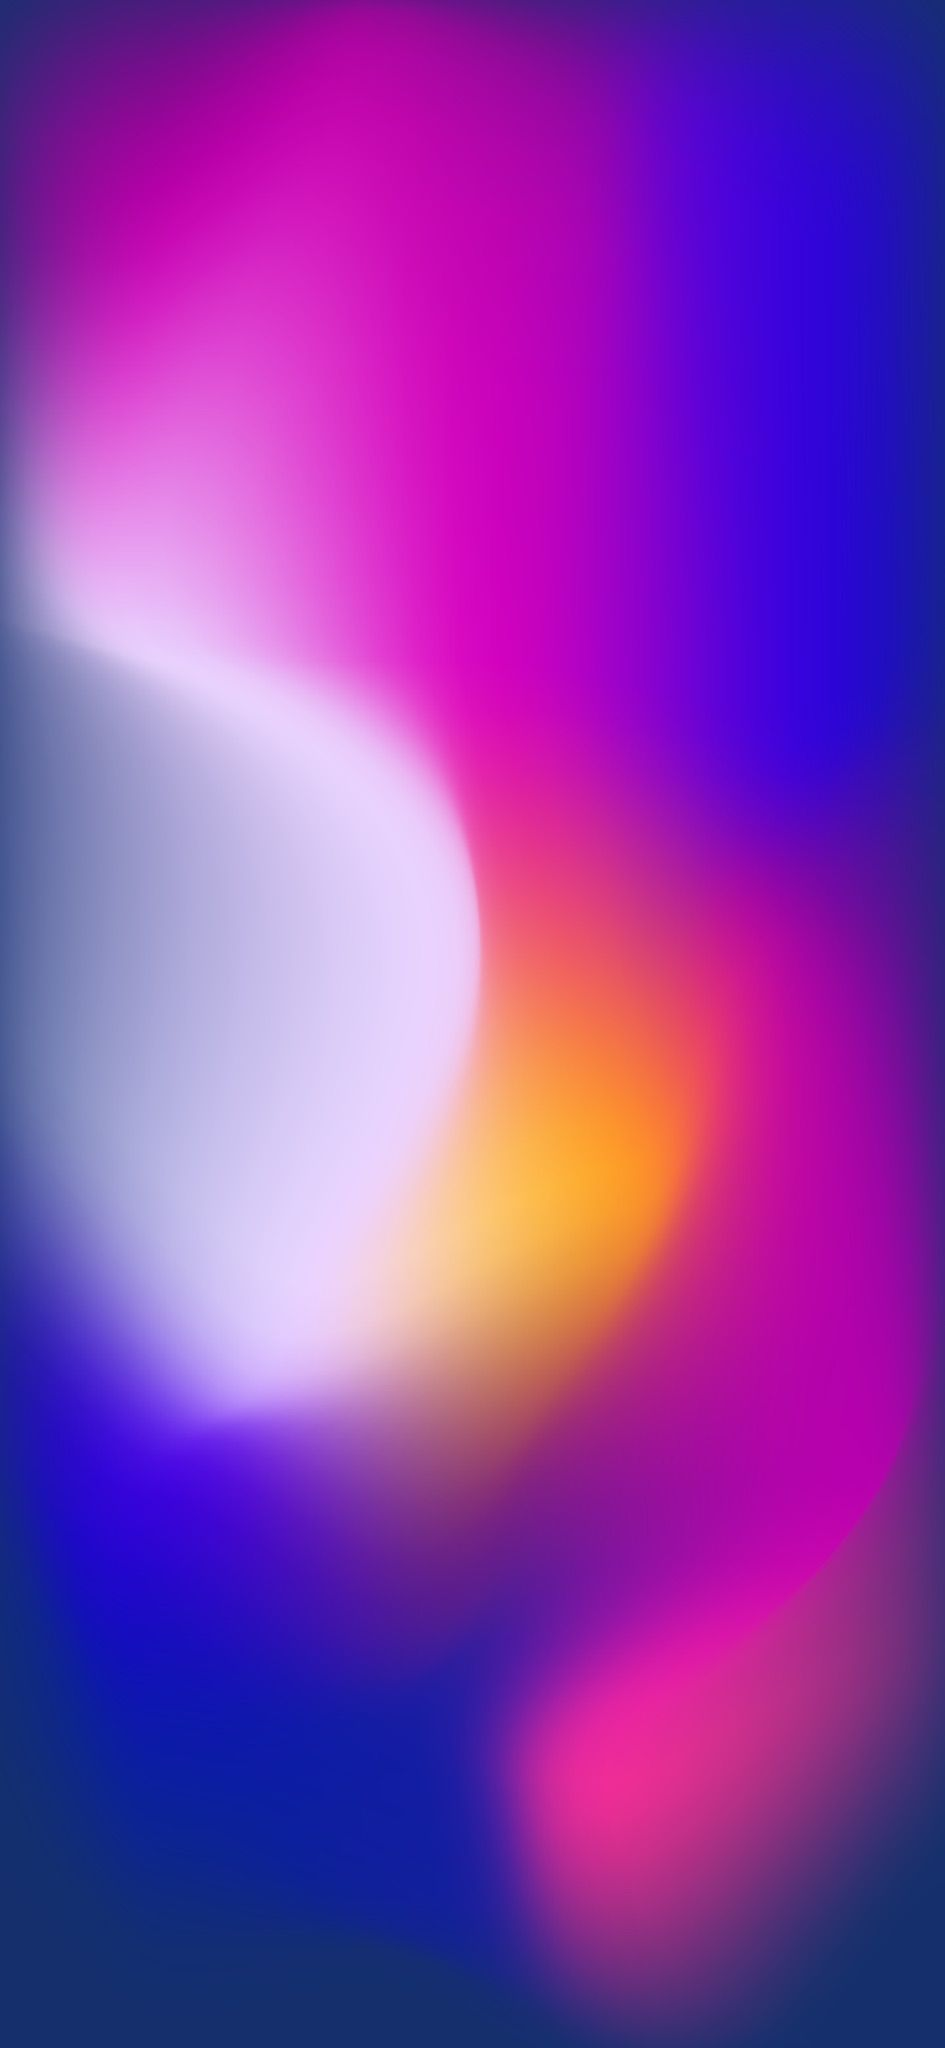 Colors A Blur Of Colors Android Wallpaper Mobile Wallpaper Iphone Wallpaper